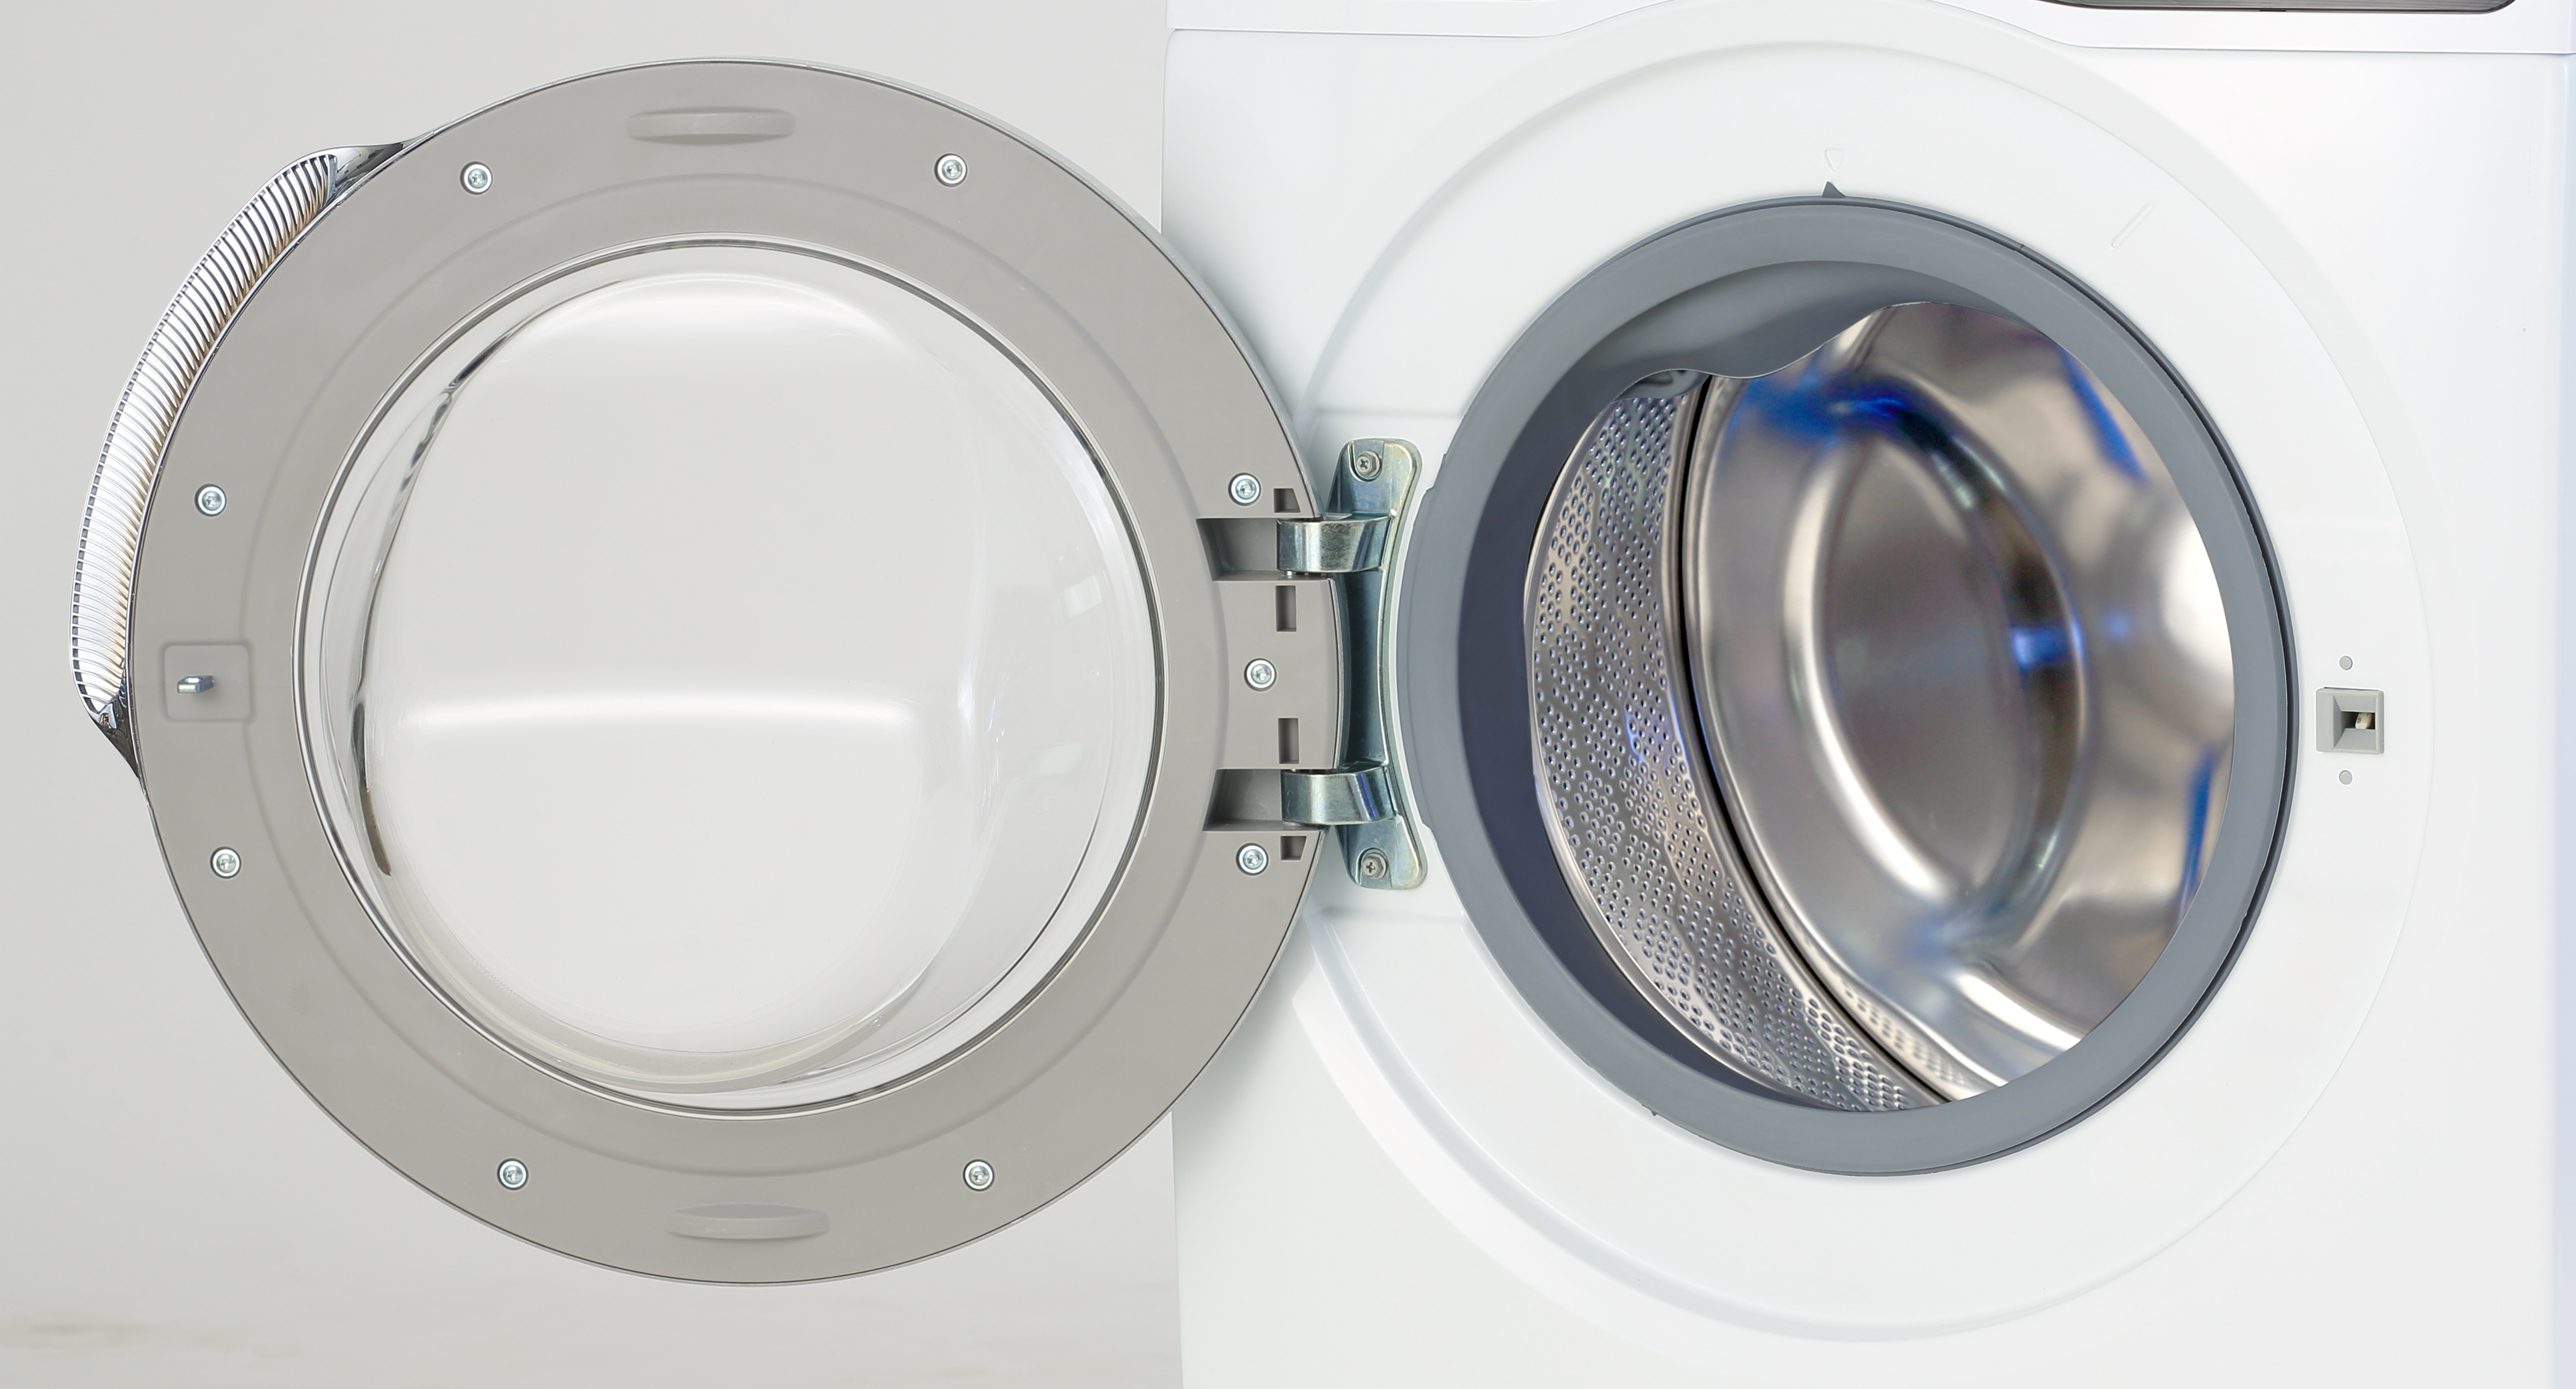 Electrolux UltimateCare™ 500 washer & Dryer Set